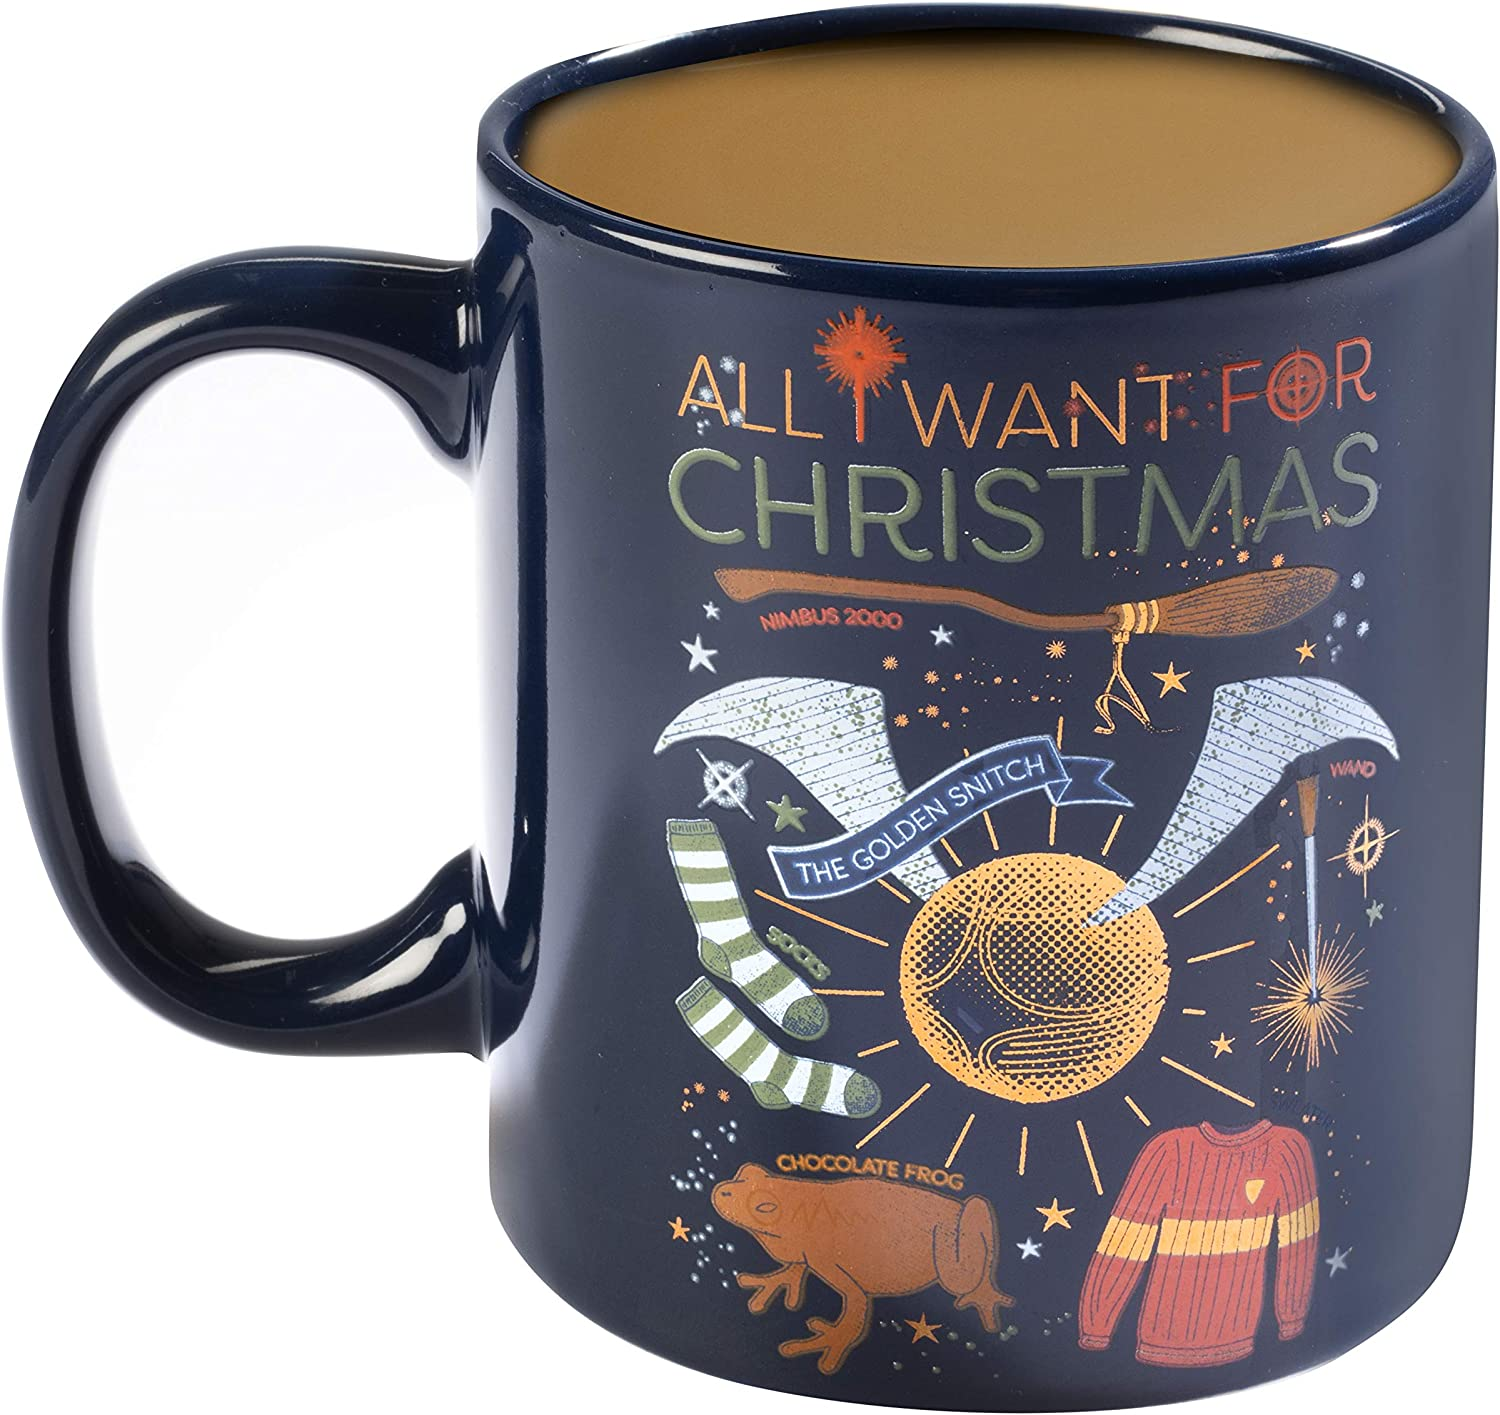 Harry Potter Holiday 11oz Coffee Mug - All I Want for Christmas - A Perfect Gift Featuring The Golden Snitch, Chocolate Frog and More